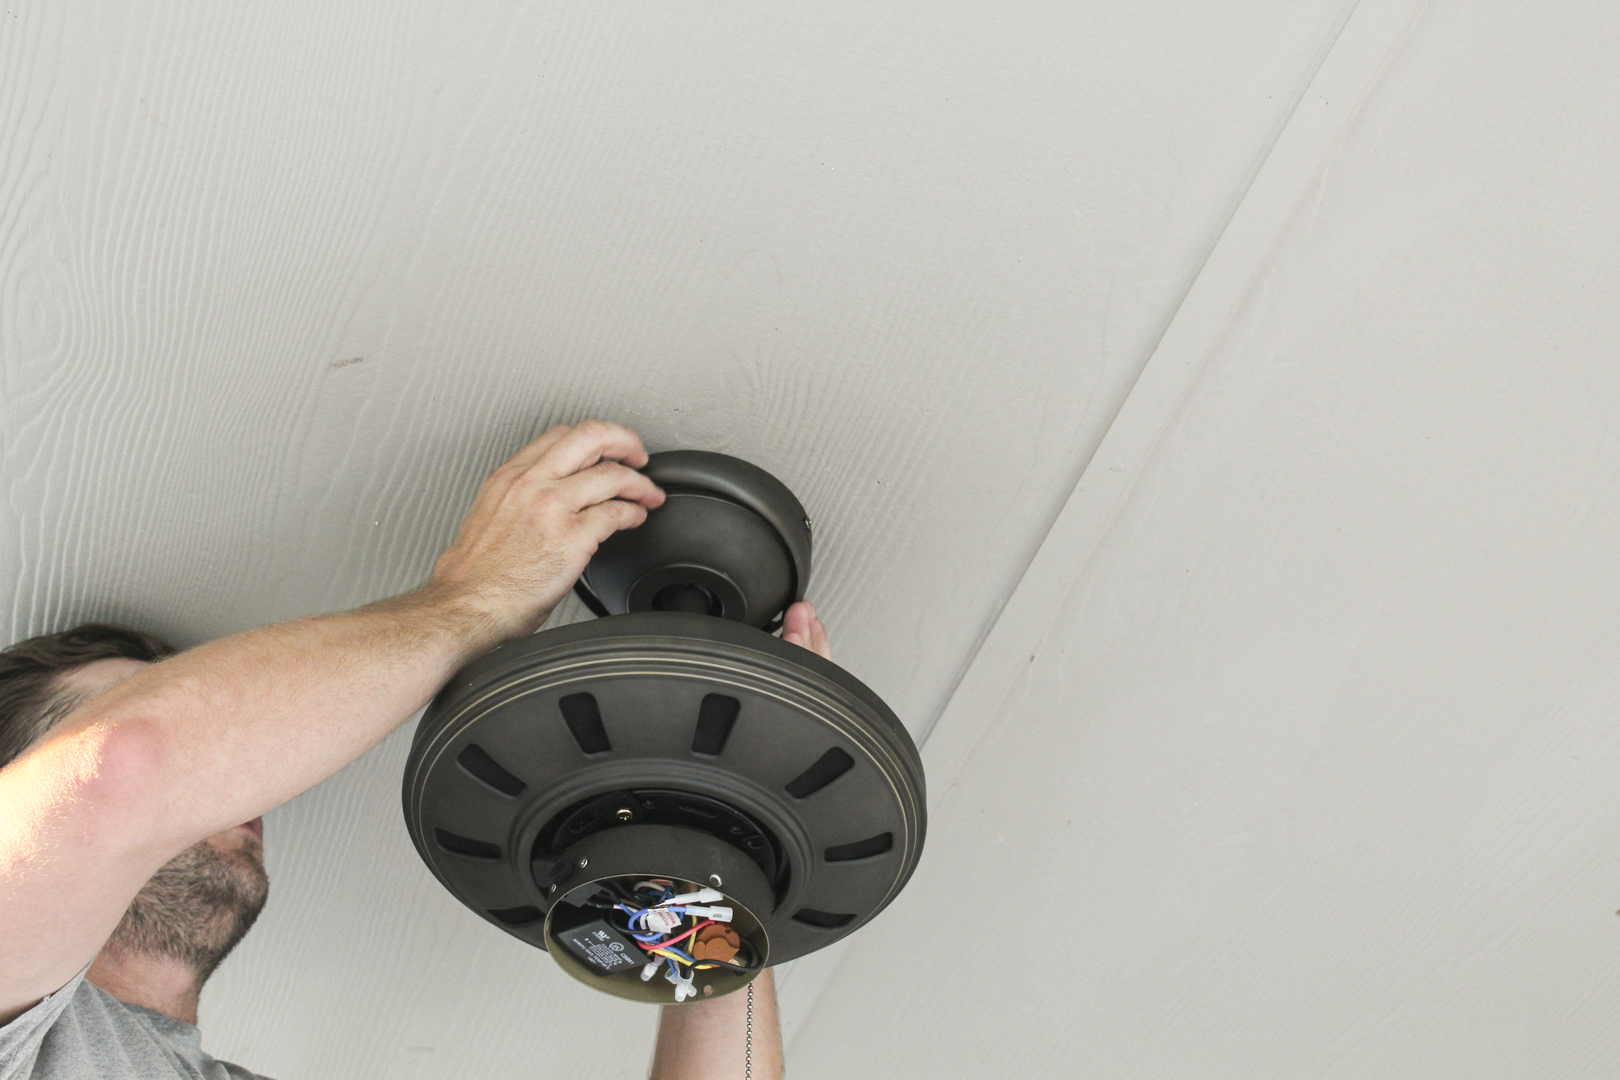 Grayzer Electric Residential Austin Electrician How To Install Wires And Wiring A Ceiling Fan Without Light Free Download The Receiver Fits Nicely Up In Canopy Of Hidden Away Where No One Can See Fit Ring Against Tighten